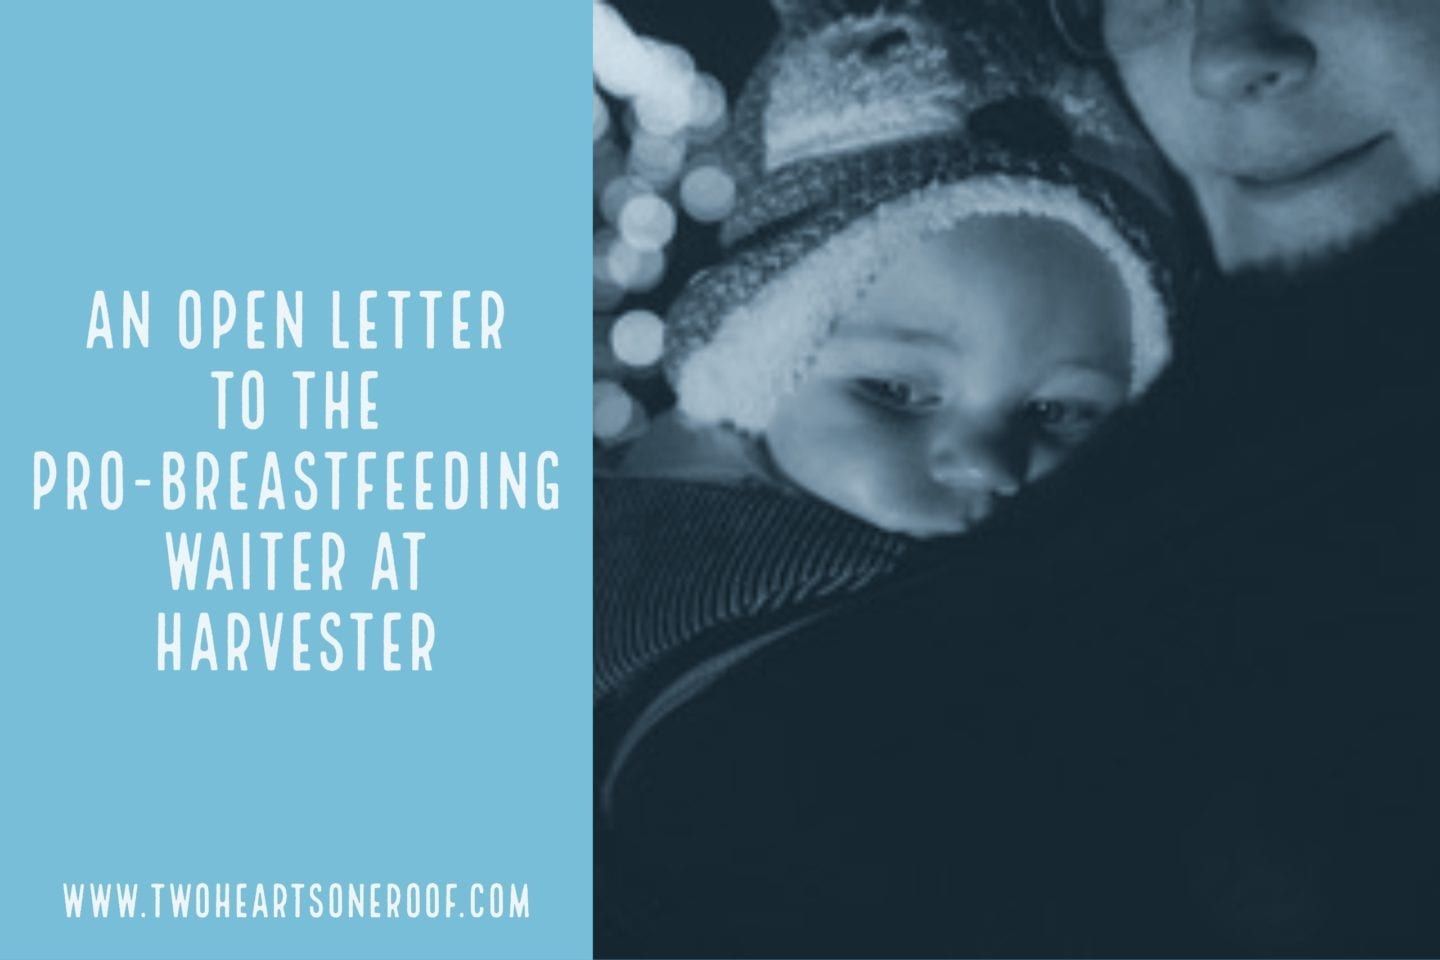 An open letter to the Pro-Breastfeeding Waiter at Harvester